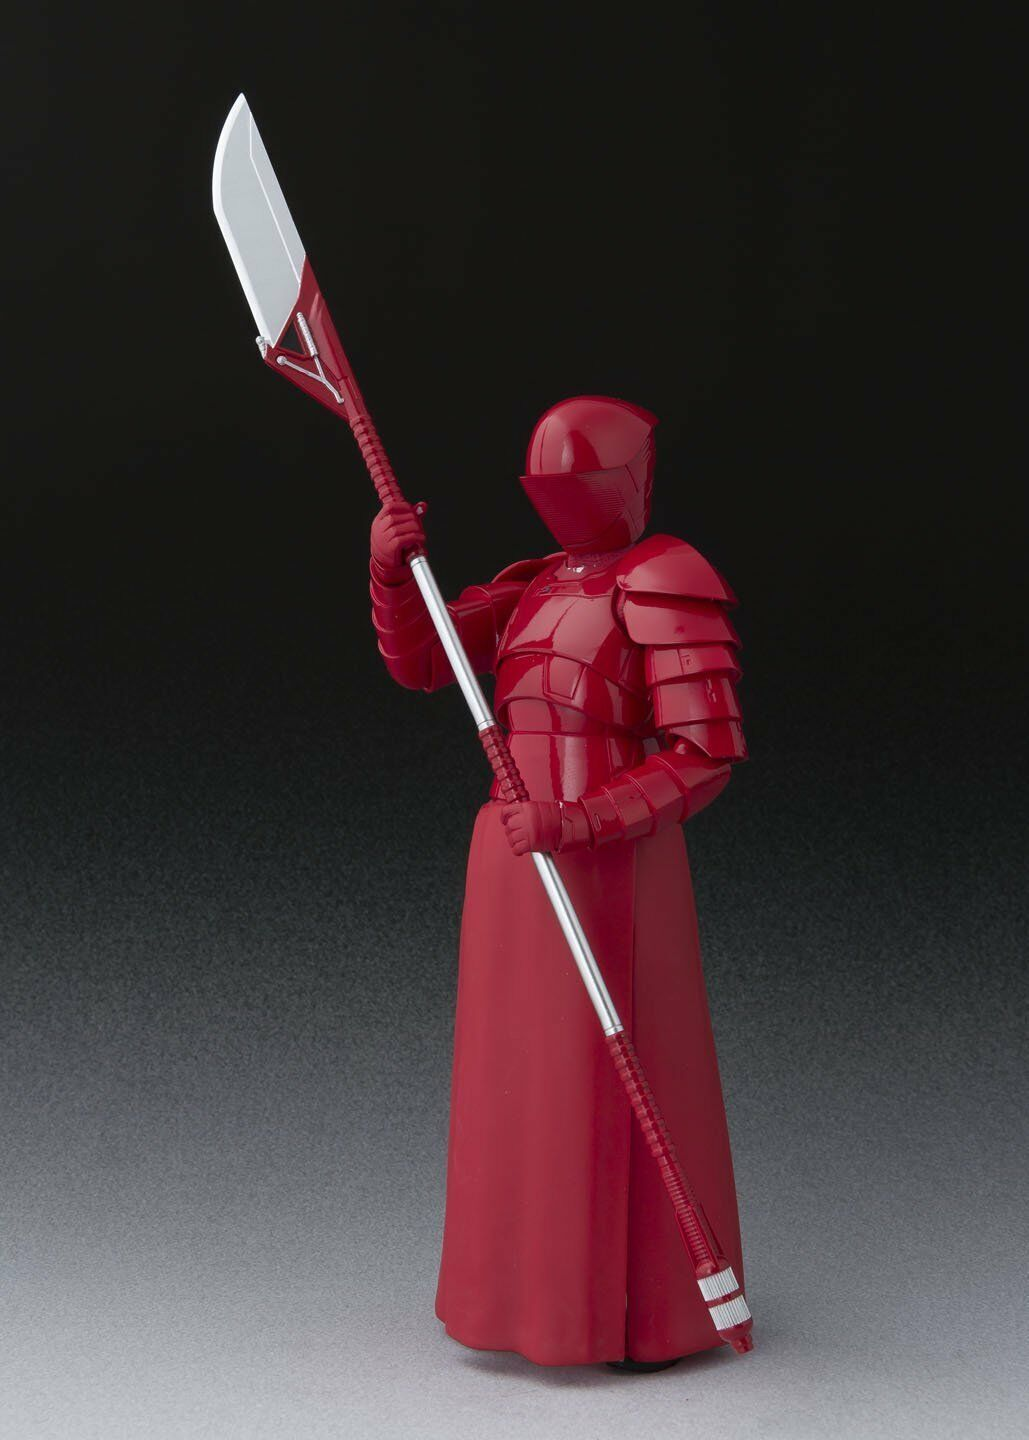 Japan Figure Bandai S. H. Figuarts Star Wars Wars Wars Elite Praetorian Guard Heavy Blade 44afda